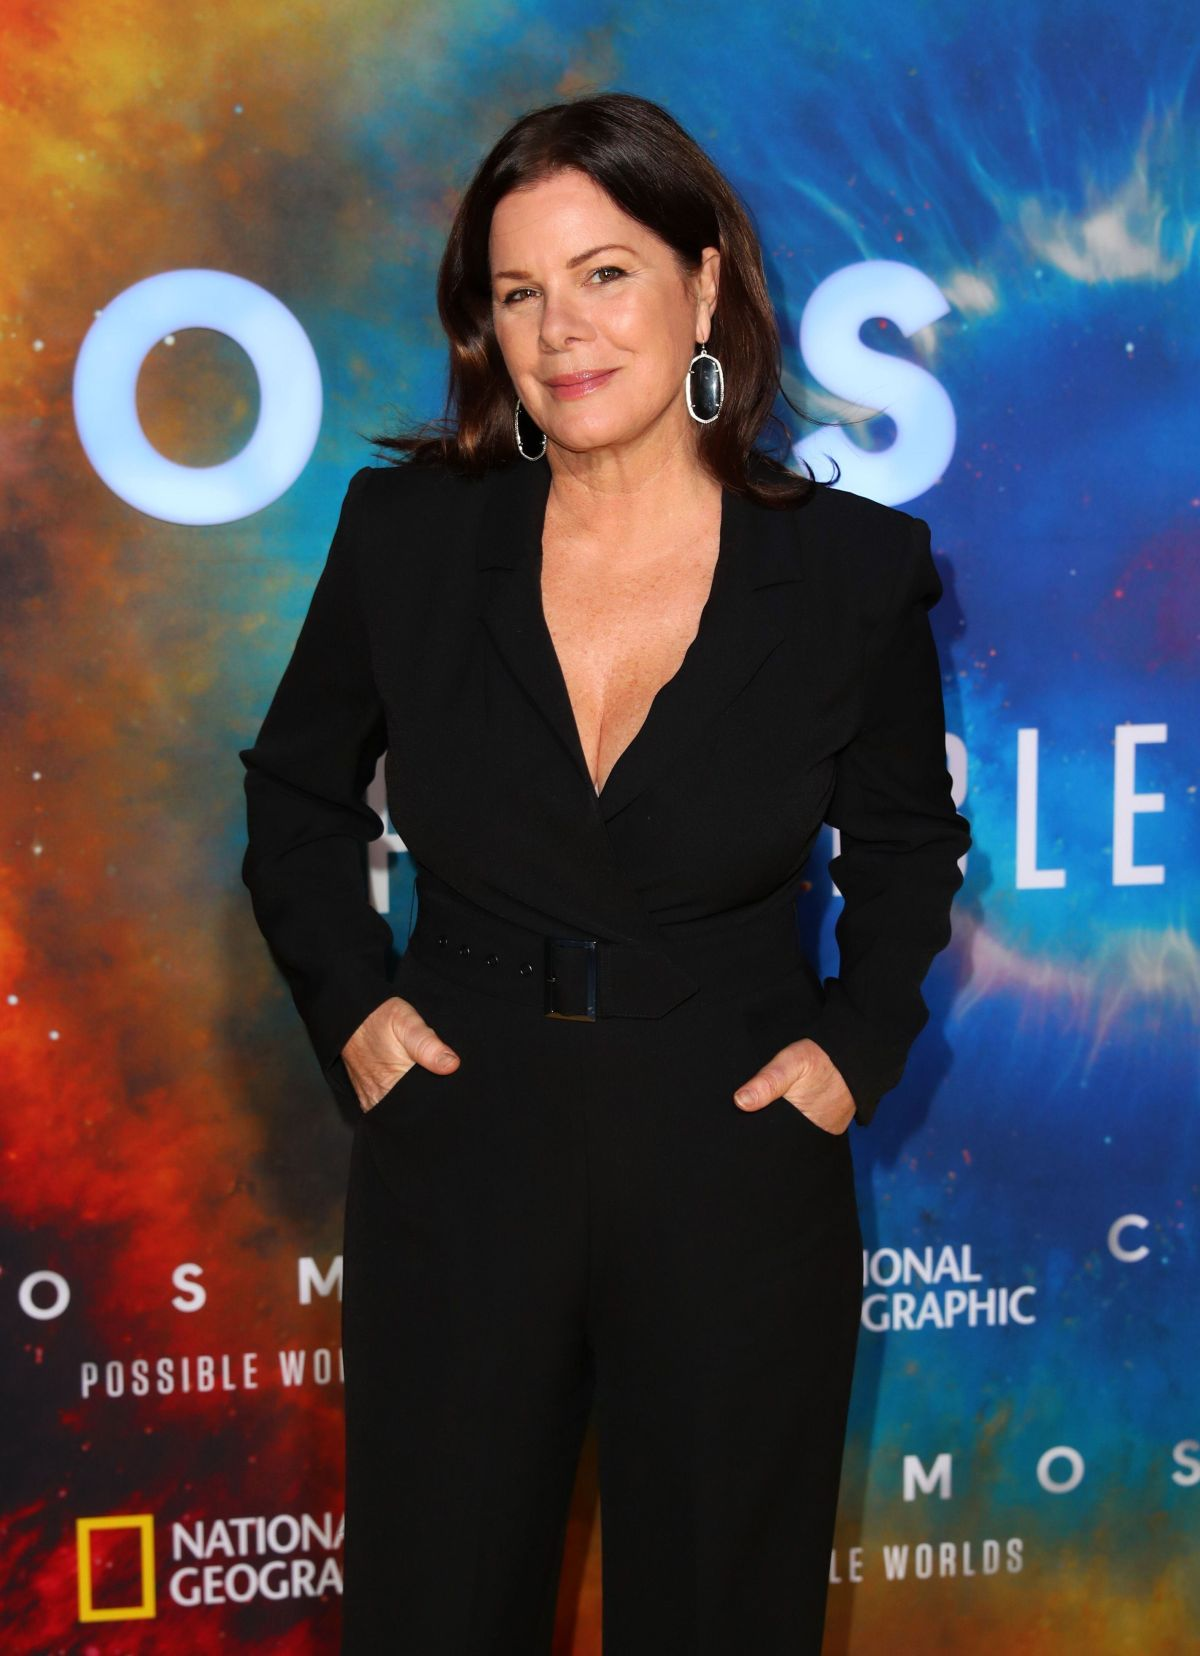 Marcia Gay Harden pictured in